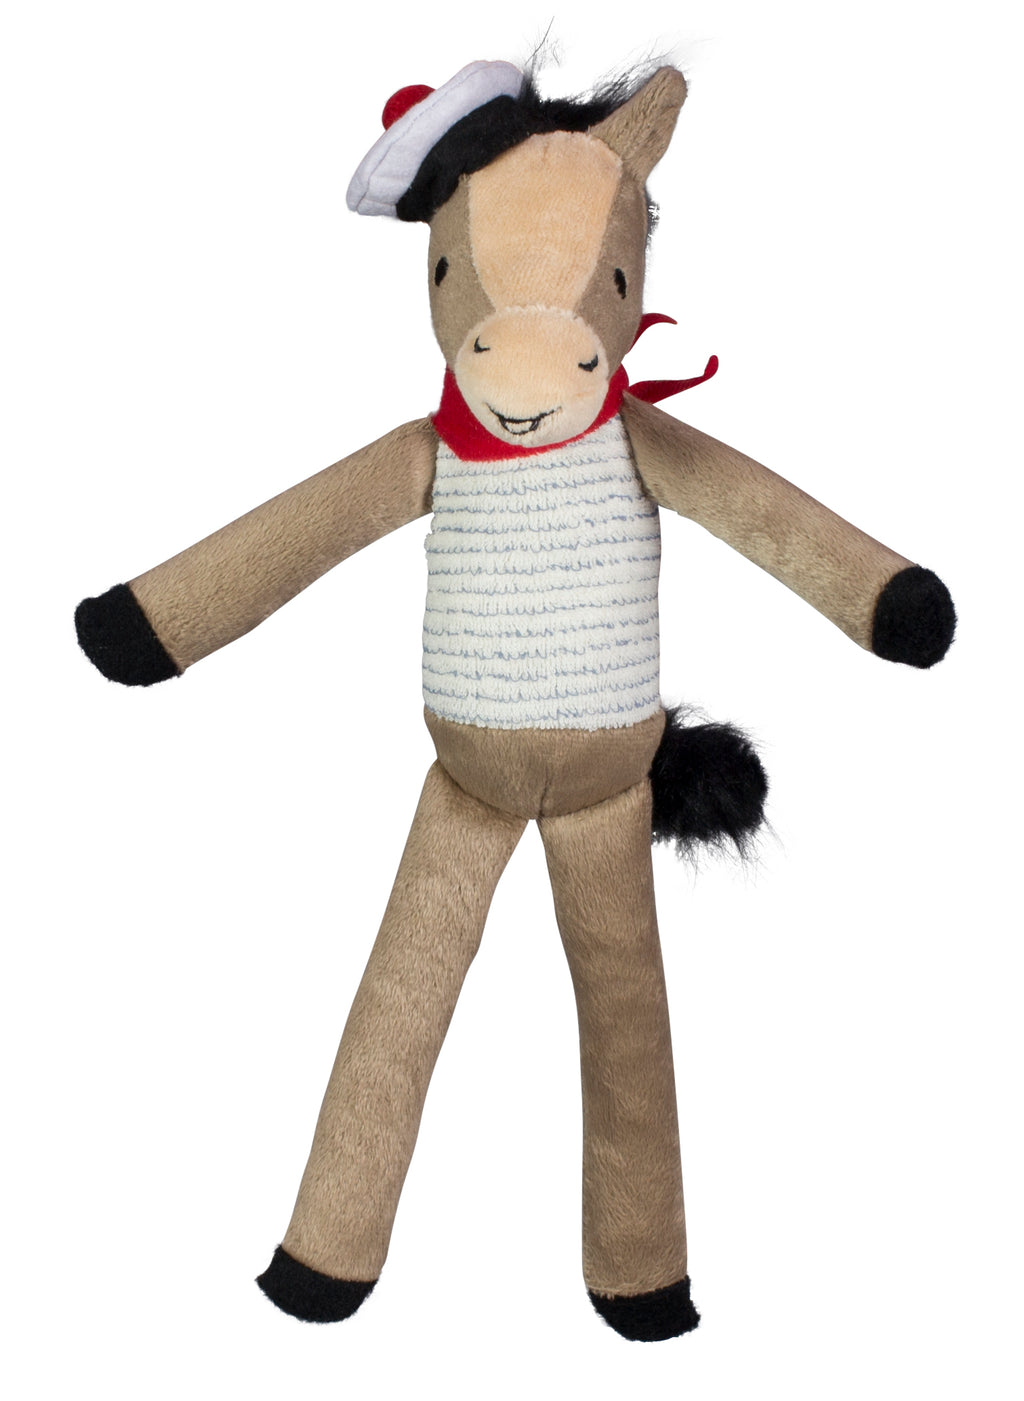 Mon Bebe Gaston Horse B&G Martin Designer Soft Plush Vintage Parisian Dog Toy